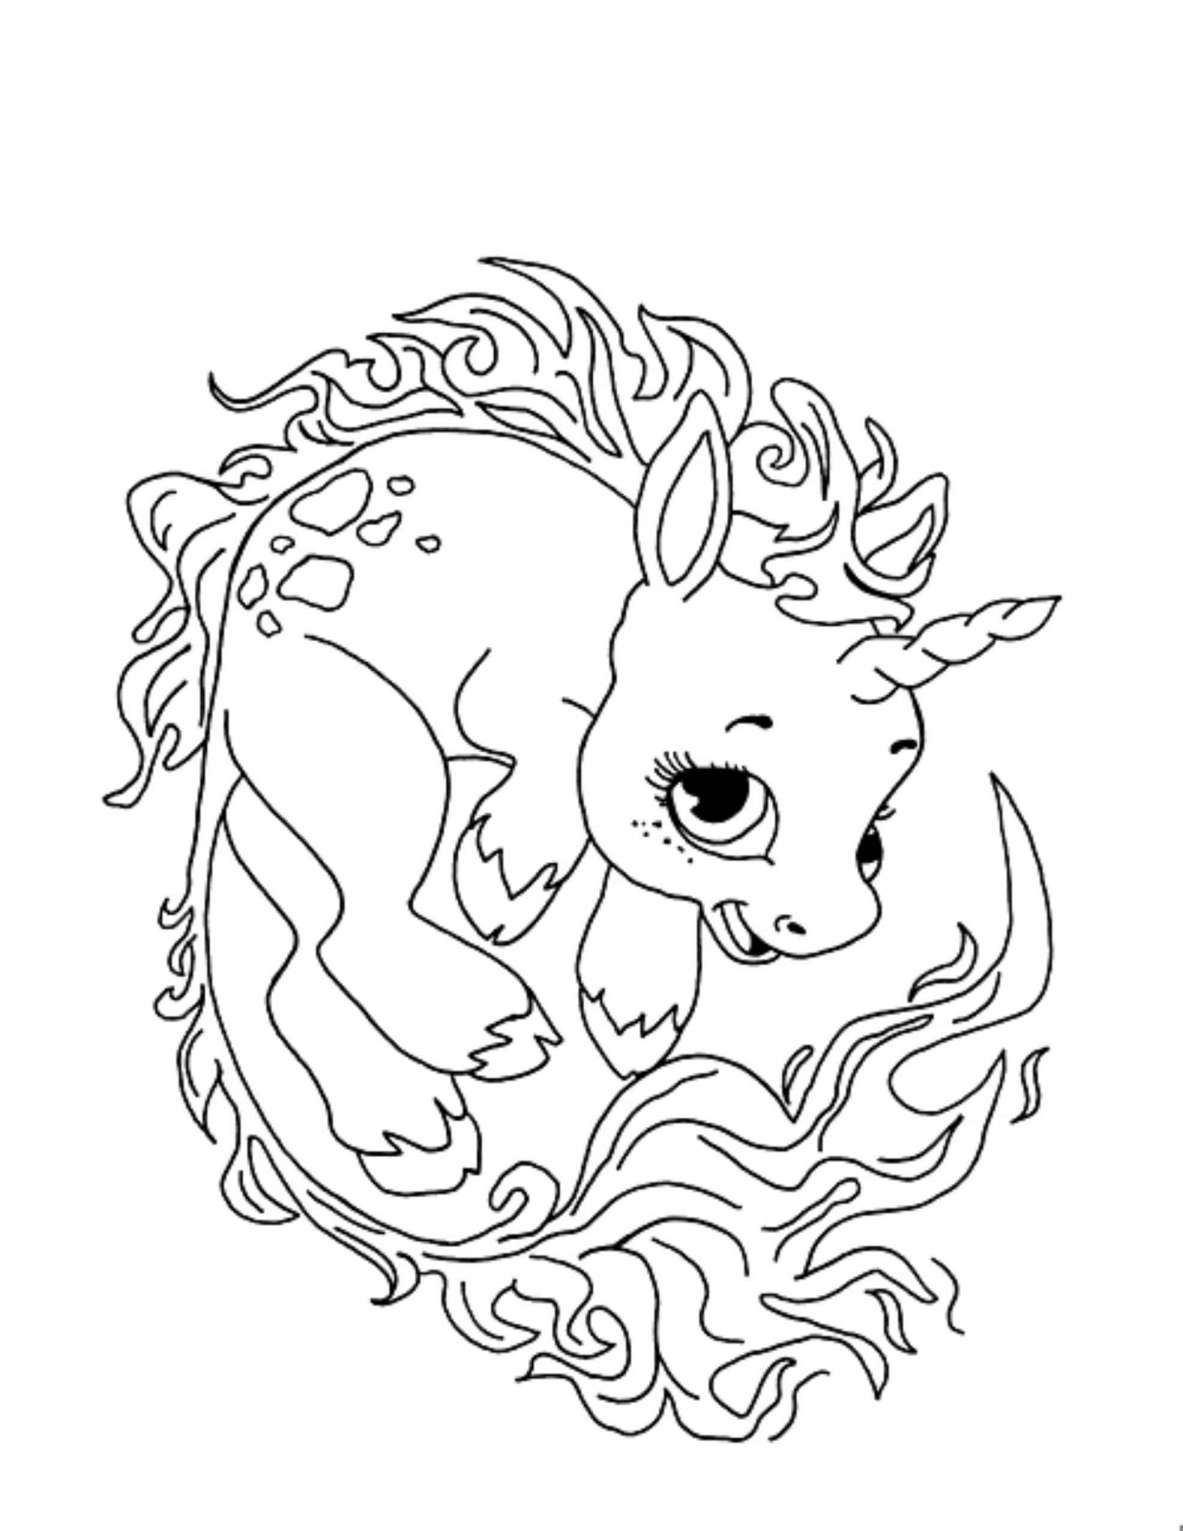 16 Fire Unicorn Coloring Page For Kids Coloring Page Dinosaurus